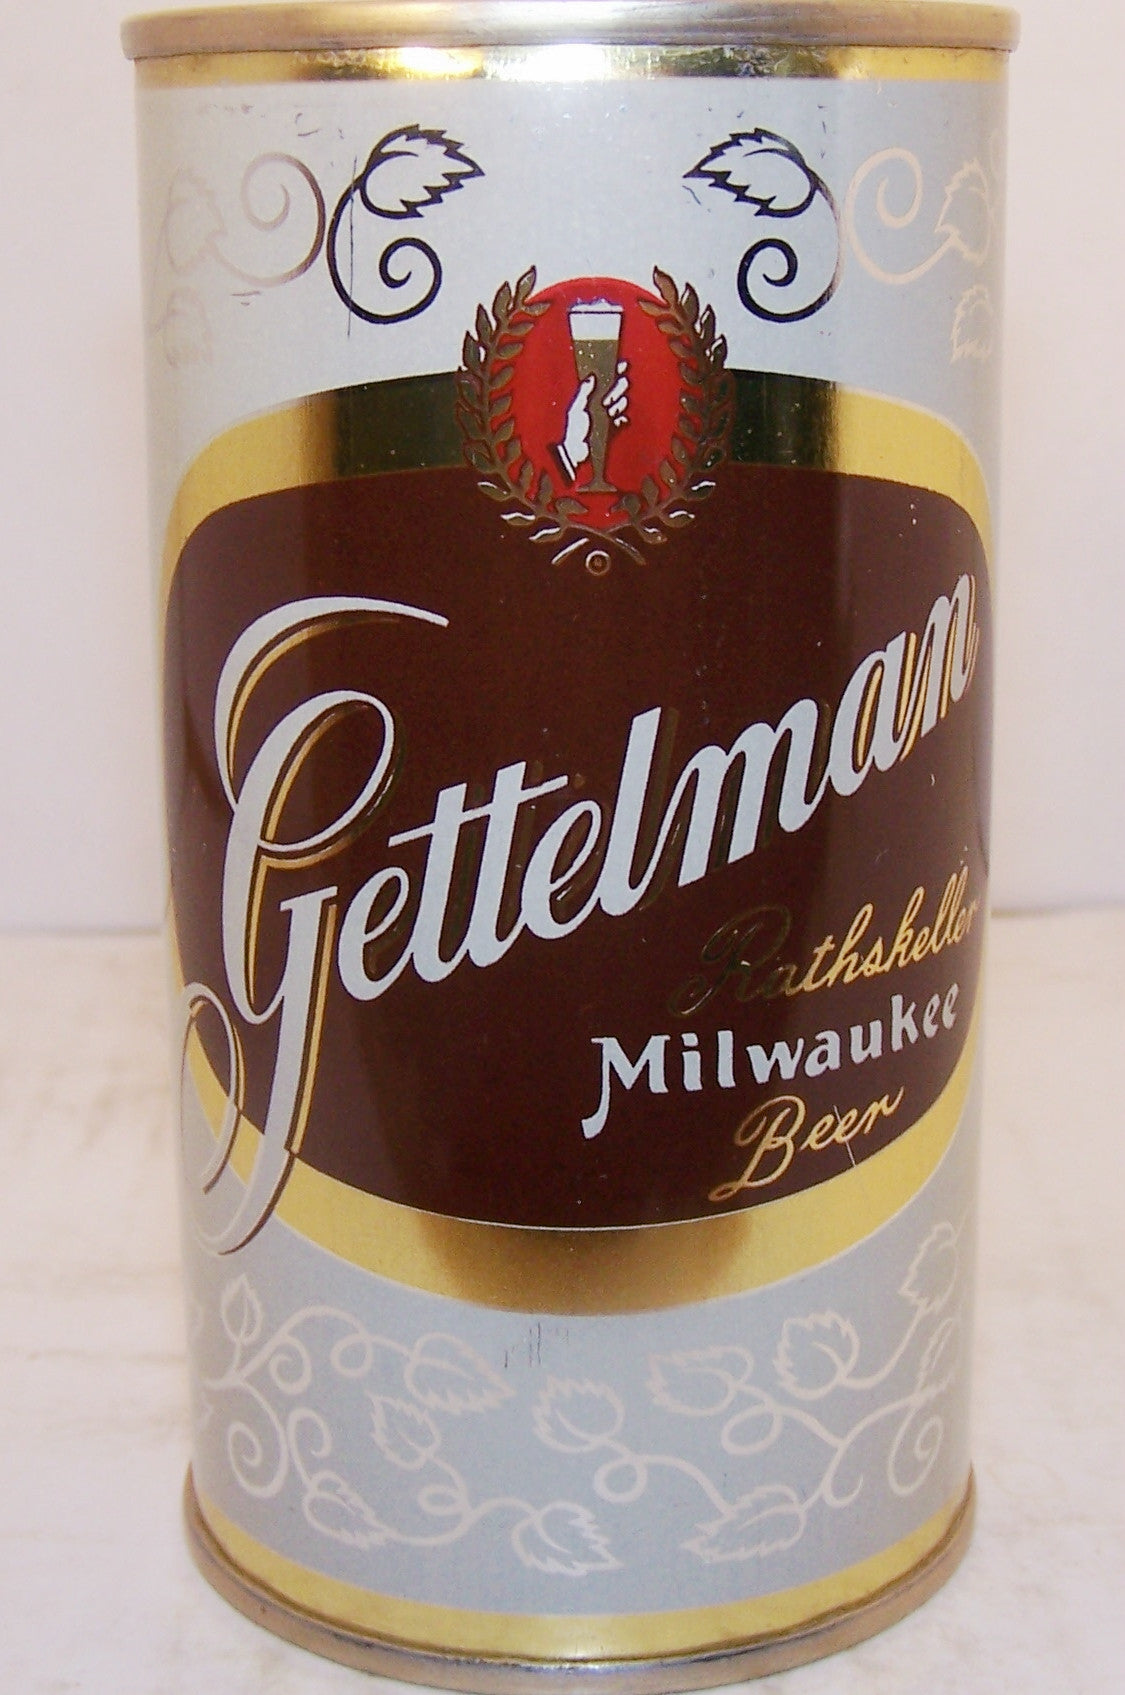 Gettelman Rathskeller Beer, USBC 69-4, Grade 1/1+ Sold 4/15/15